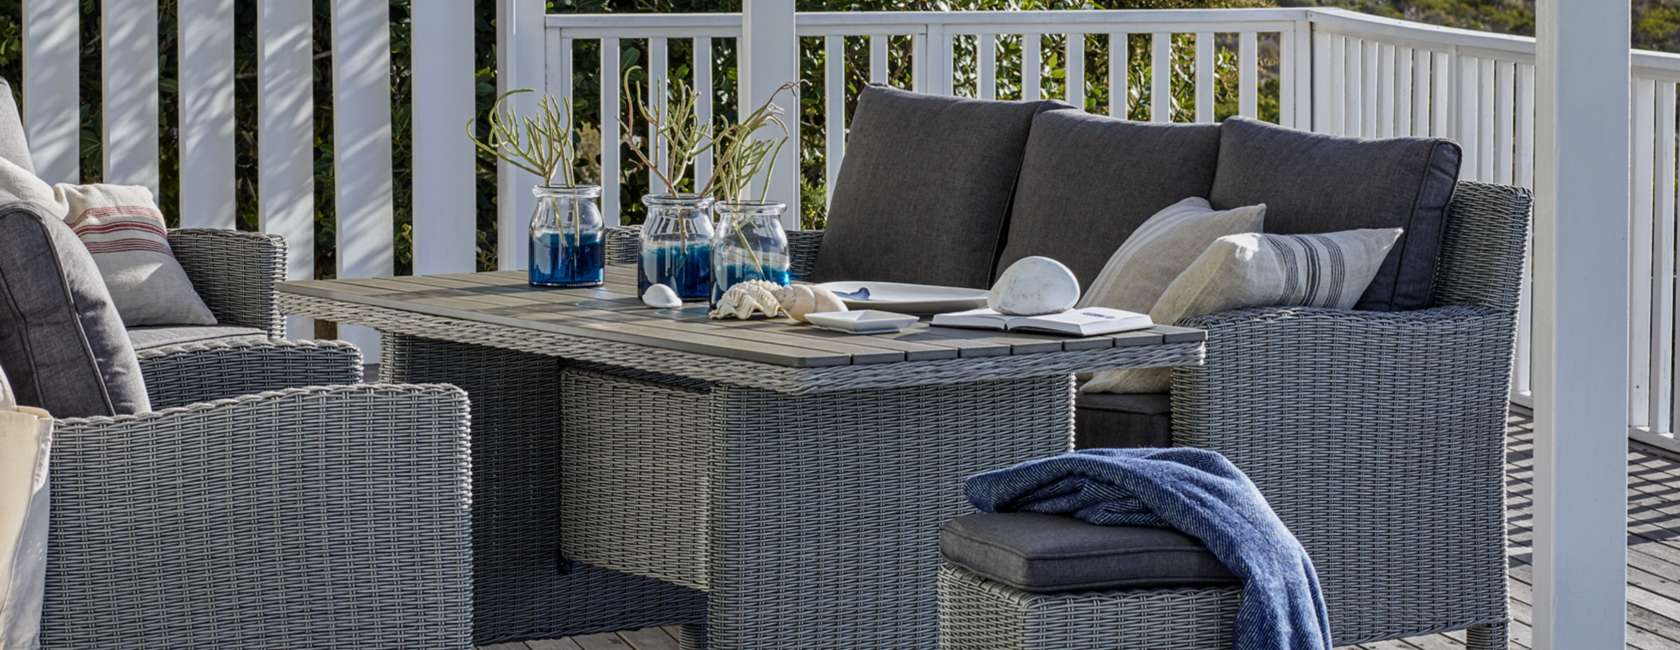 Kettler palma outdoor furniture